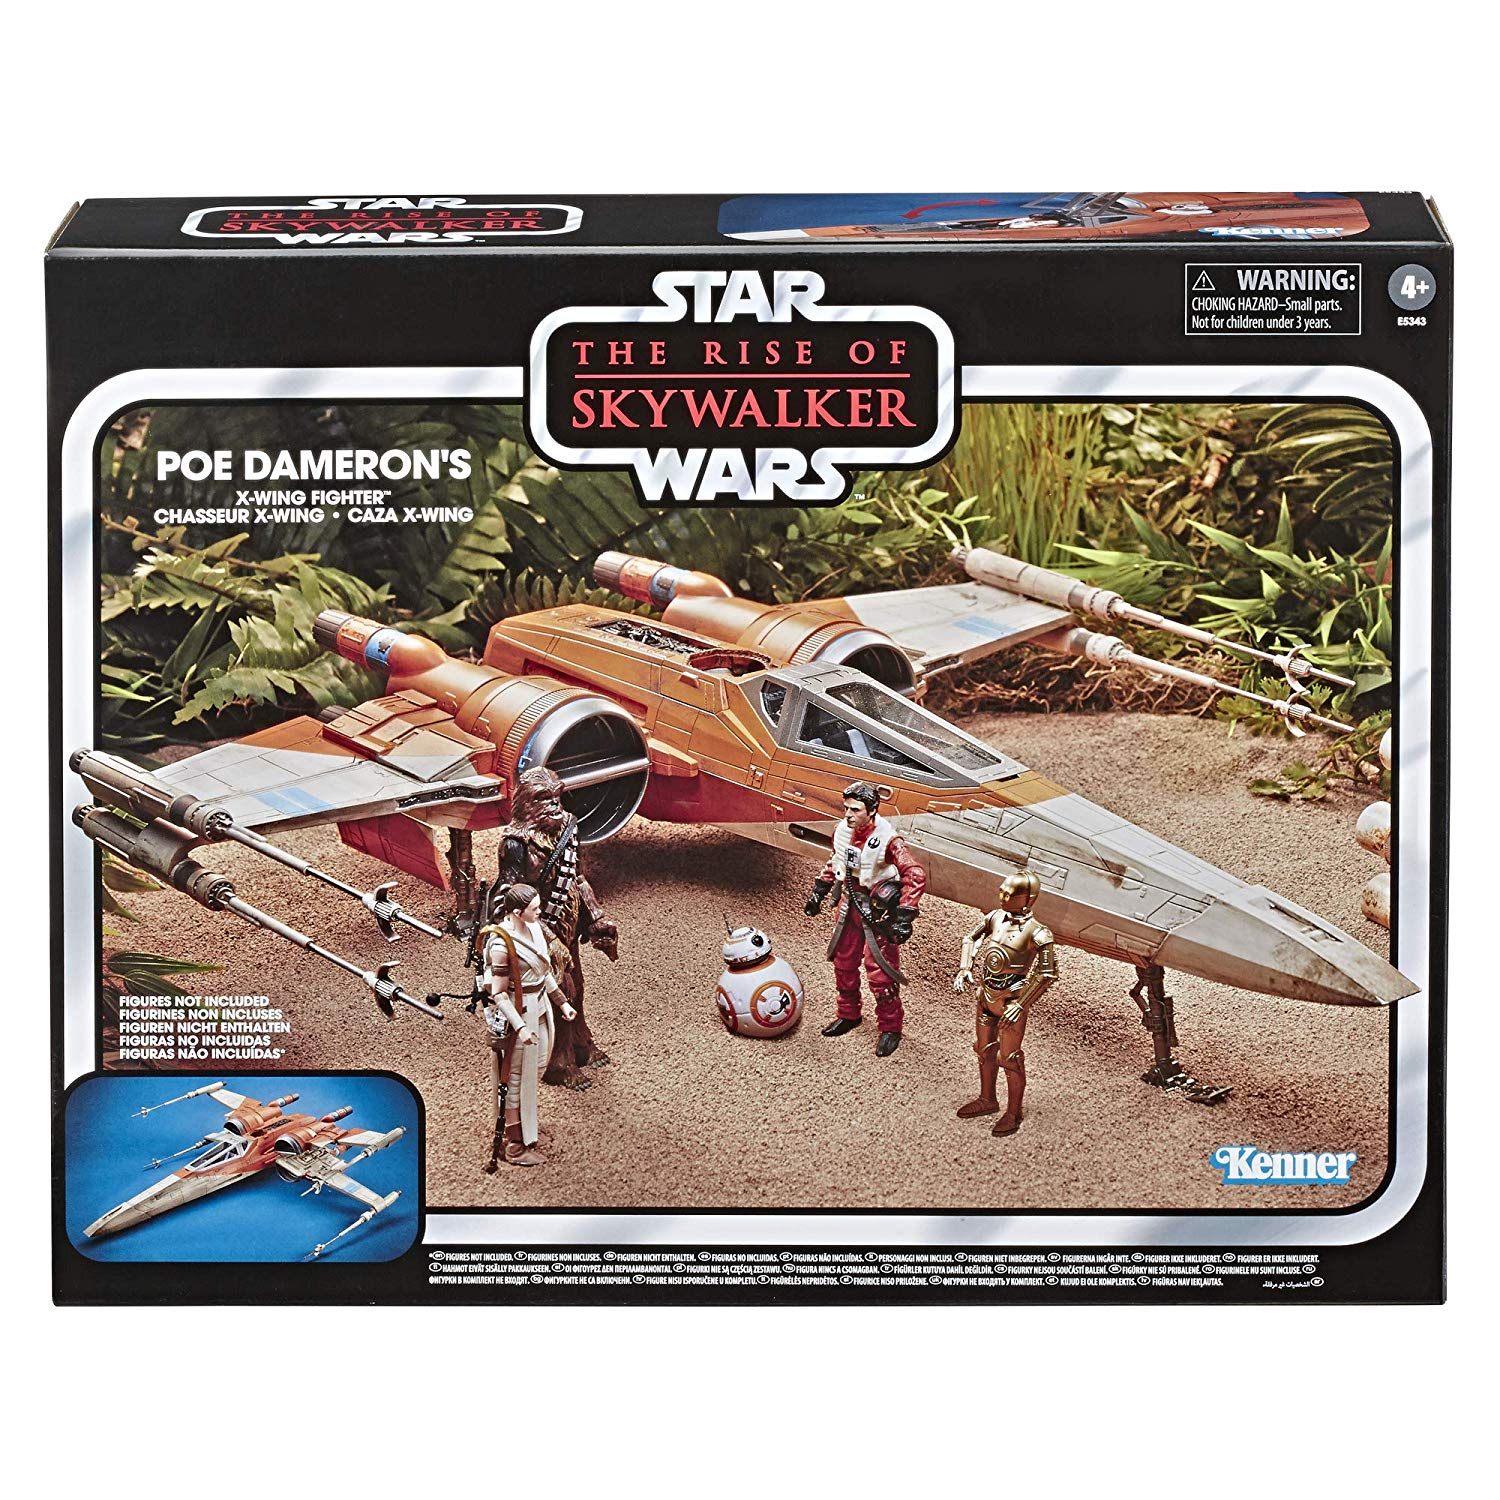 91gkpPqDTyL. SL1500 - Rise of Skywalker Gift ideas for Star Wars Lovers [User Rated]